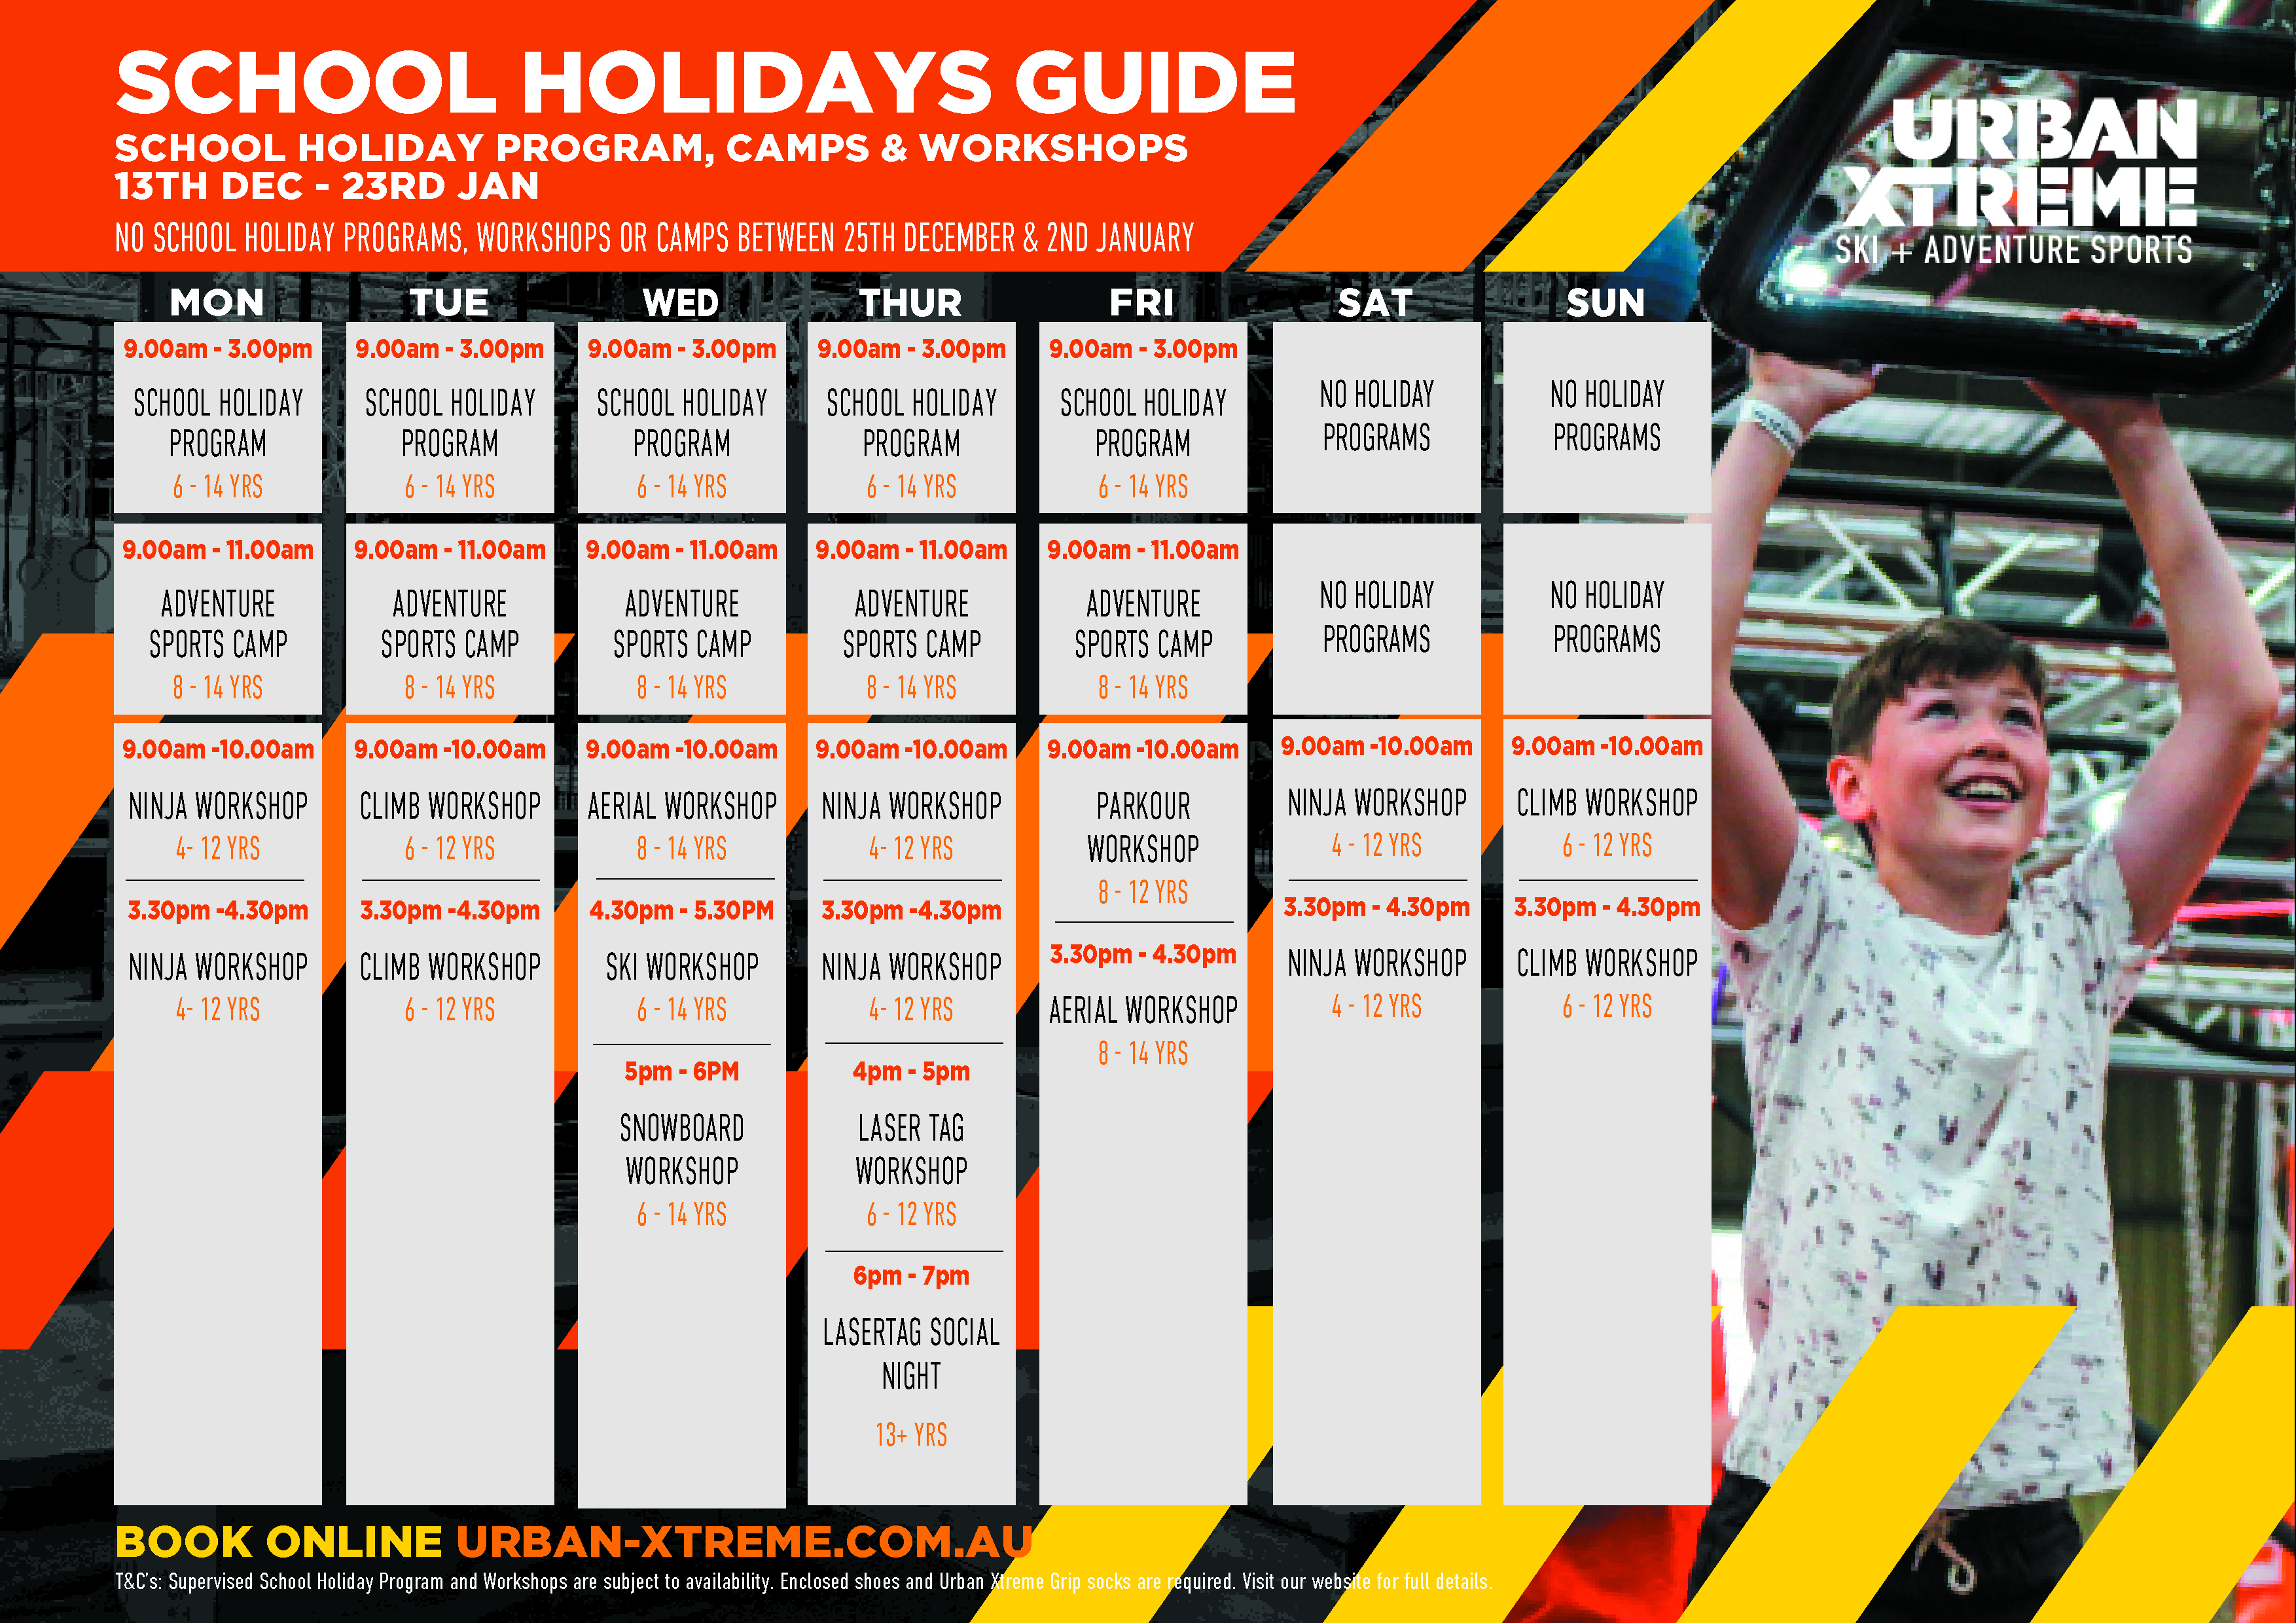 Browse the latest UX School Holiday Events Guide